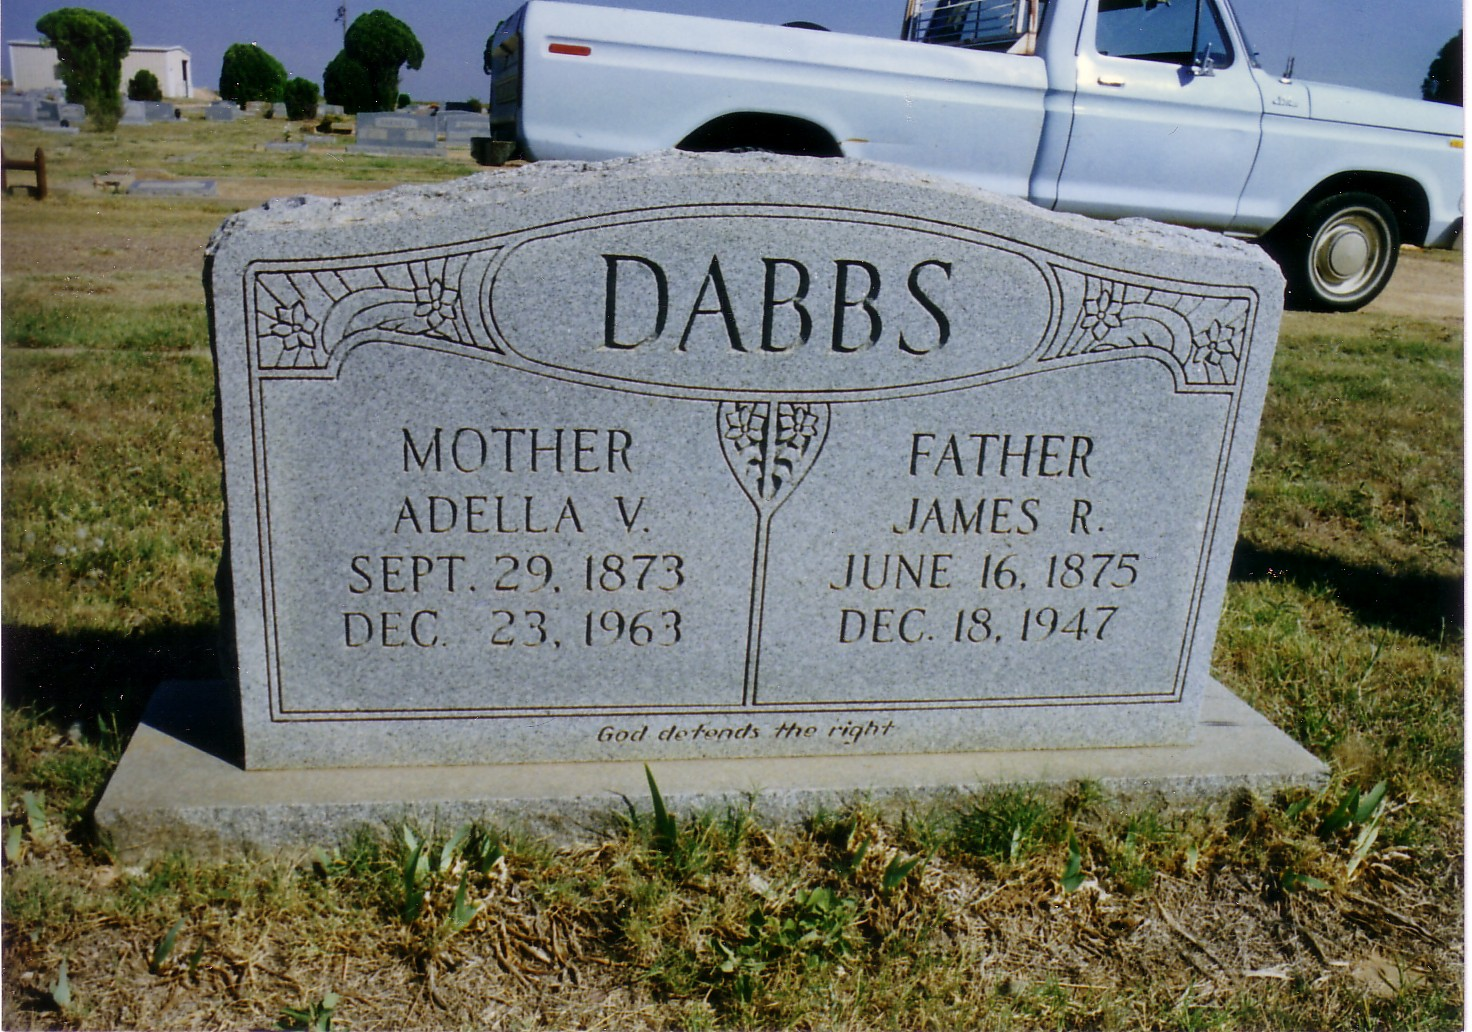 James Robert Dabbs